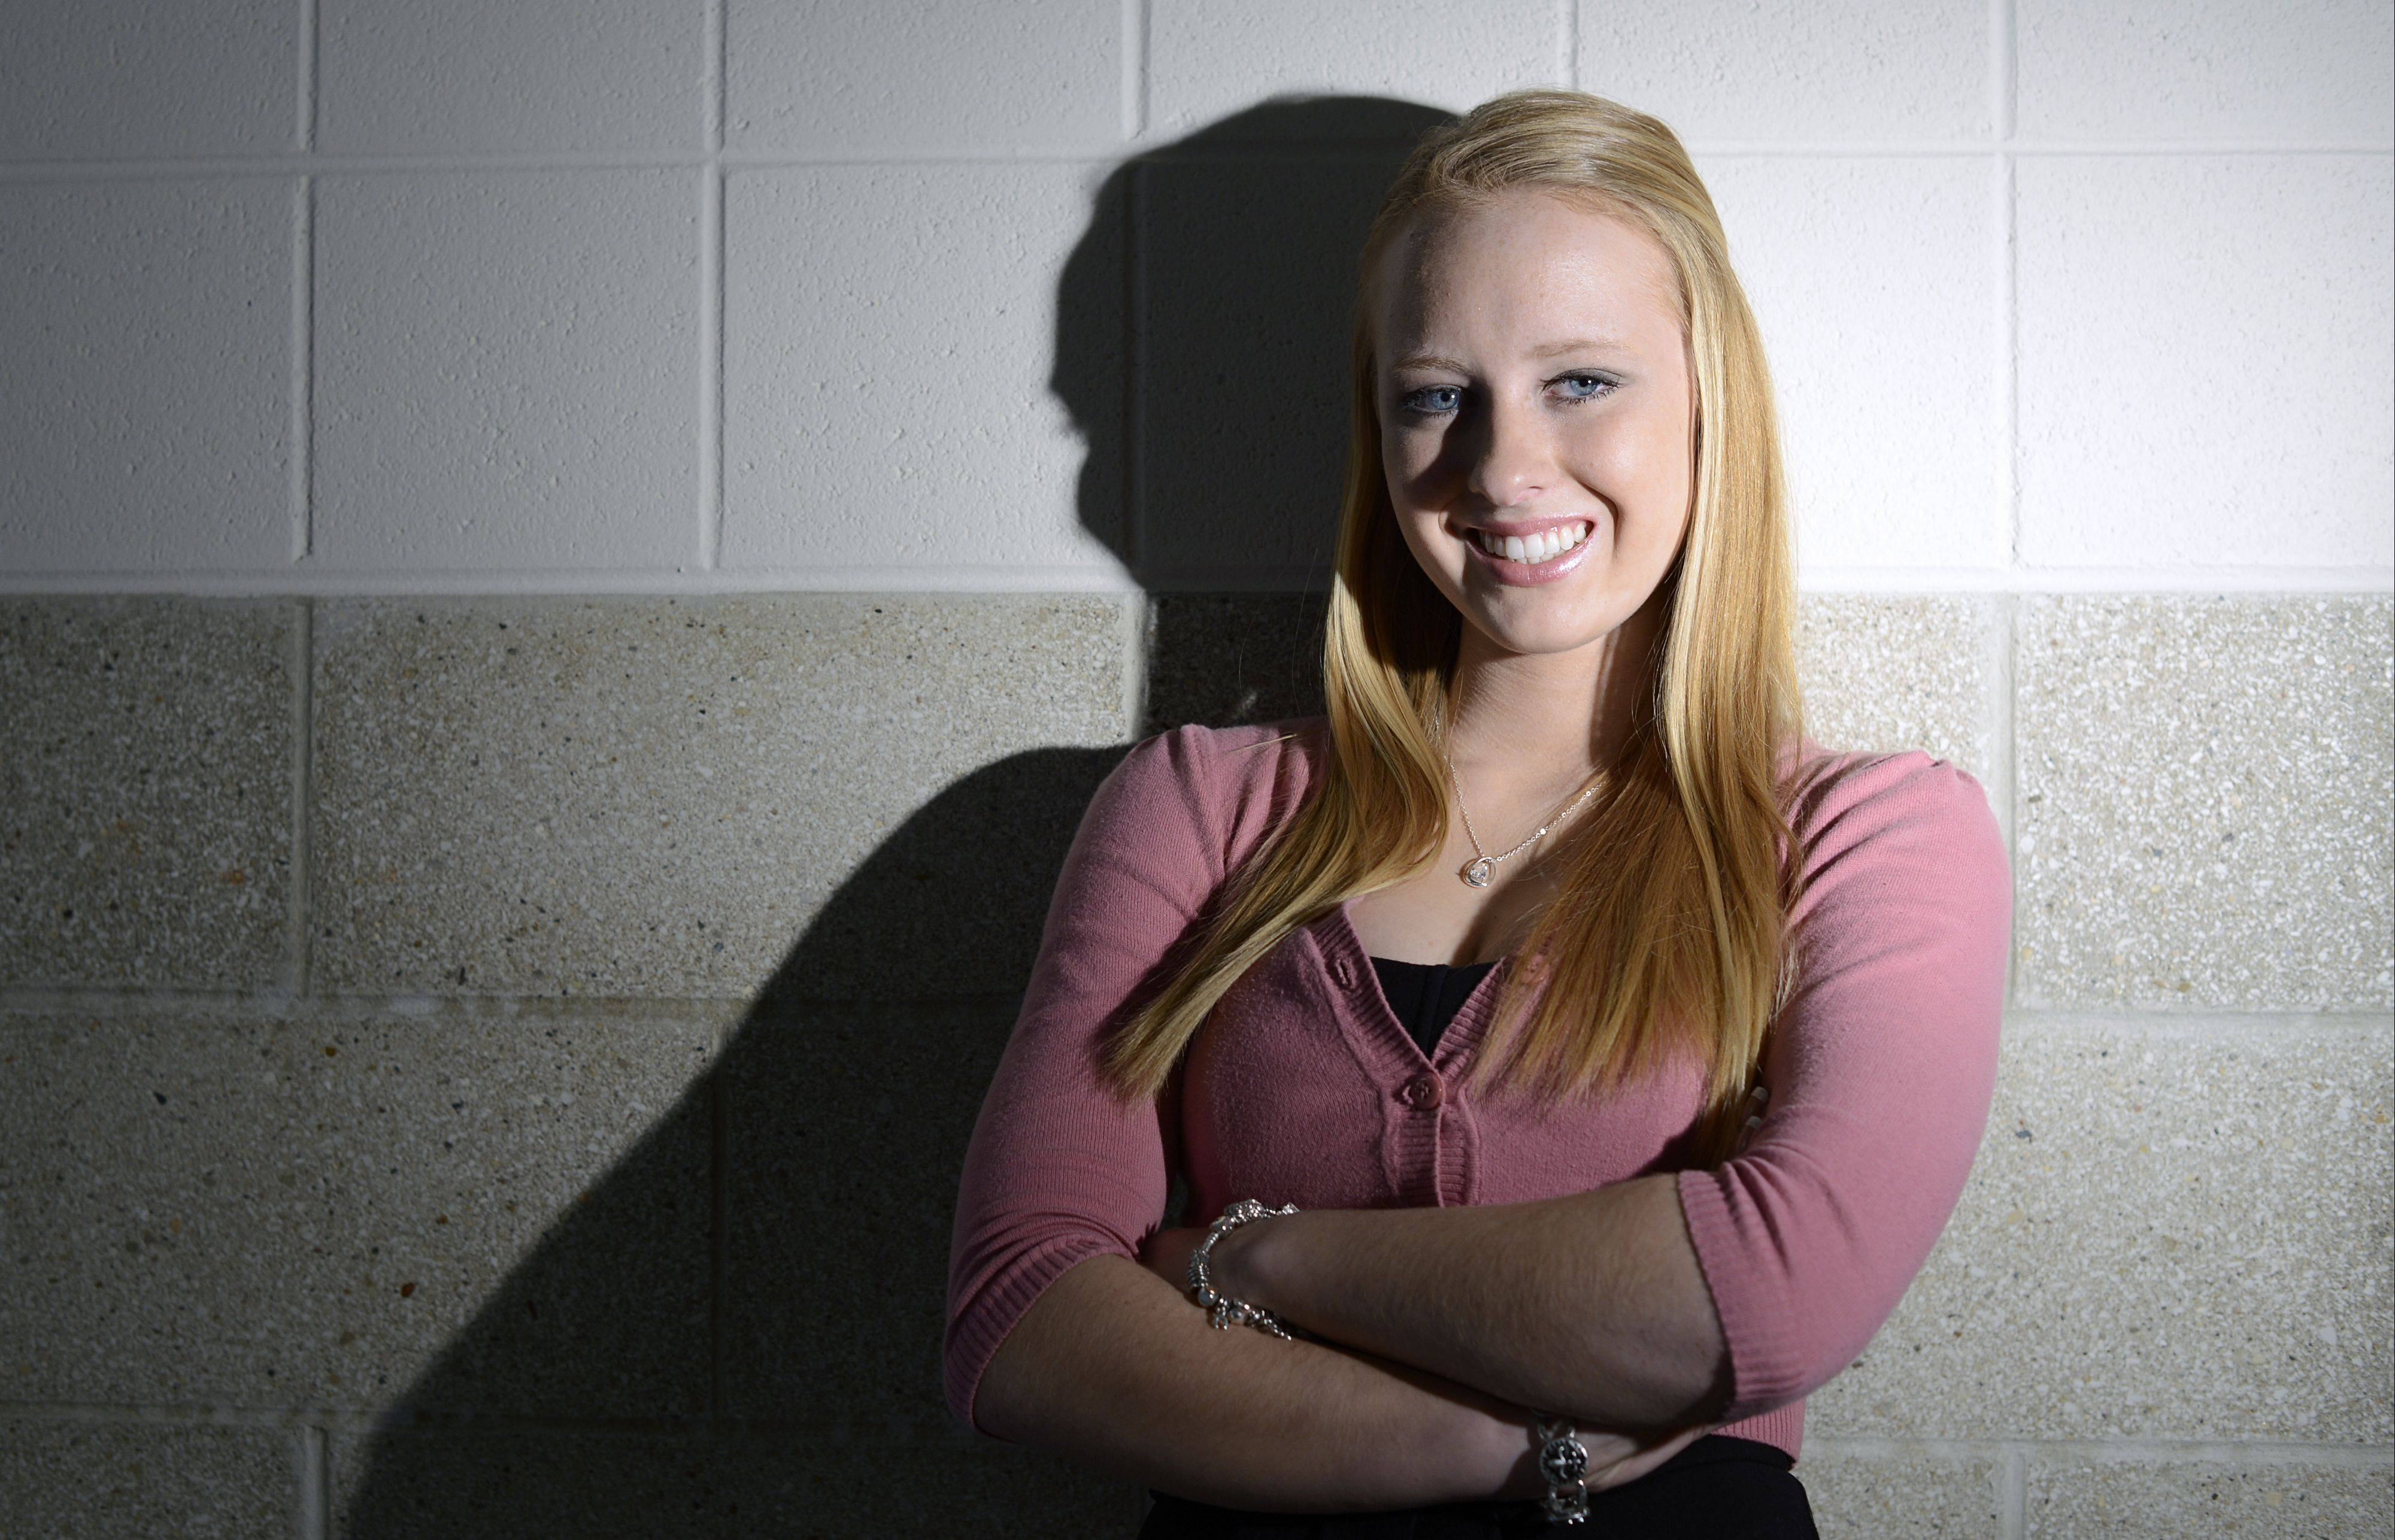 Daniela Kapusta, 17, of St. Charles, was recently featured in Vogue Italia. She says she spent much of her time at St. Charles East High School in the depths of depression due to frequent bullying. Things have turned around in her senior year. She is a student adviser on the board of a suicide prevention club. While helping out at a charity fashion show, she modeled a dress which brought her to the attention of the fashion industry.